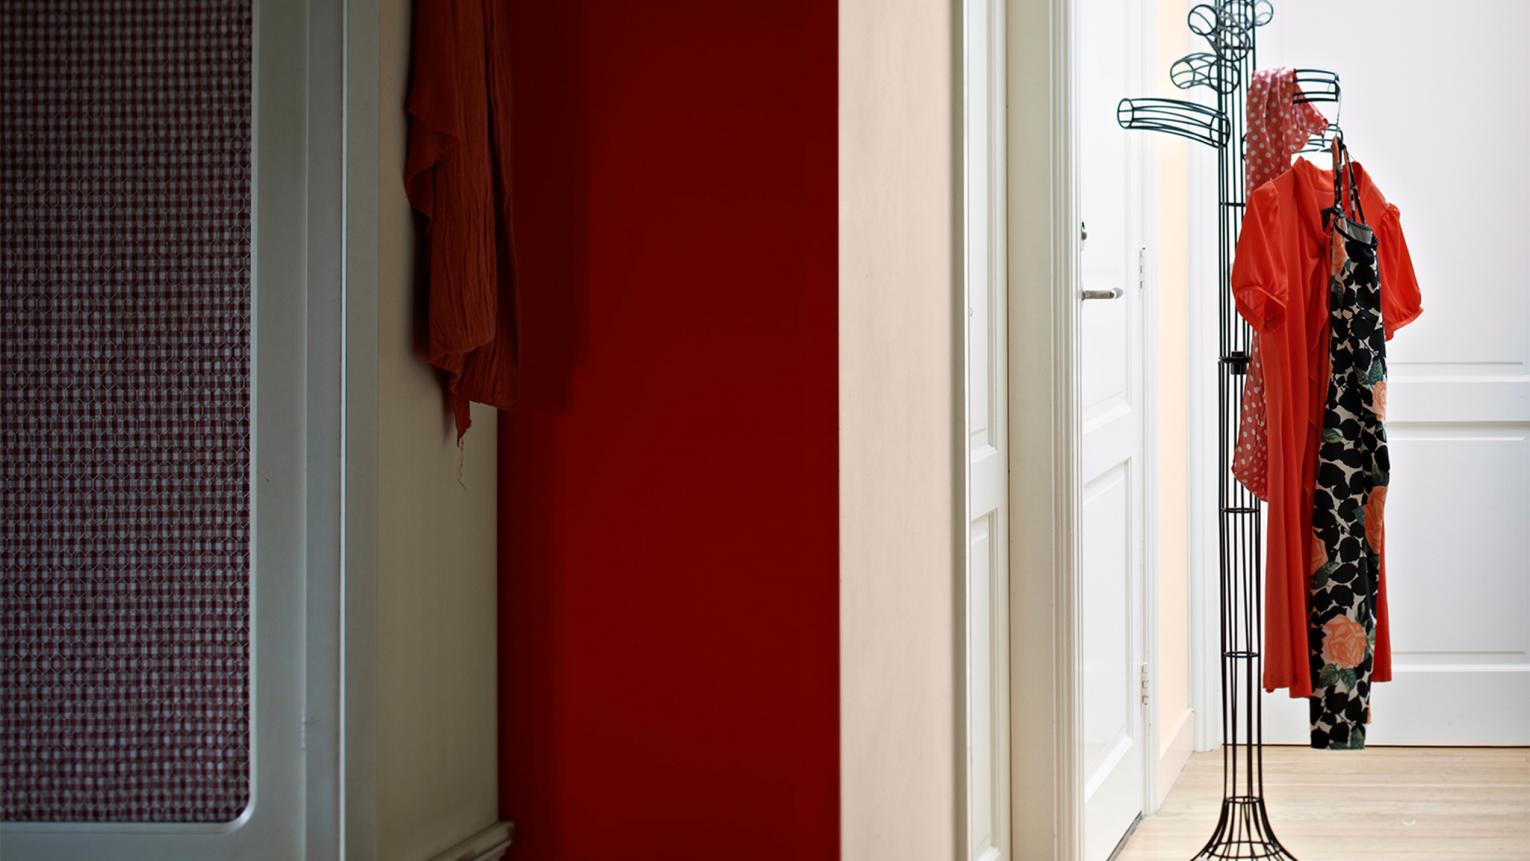 Bring warmth and passion into your hallway with a colour scheme of rich oranges and cool neutrals.